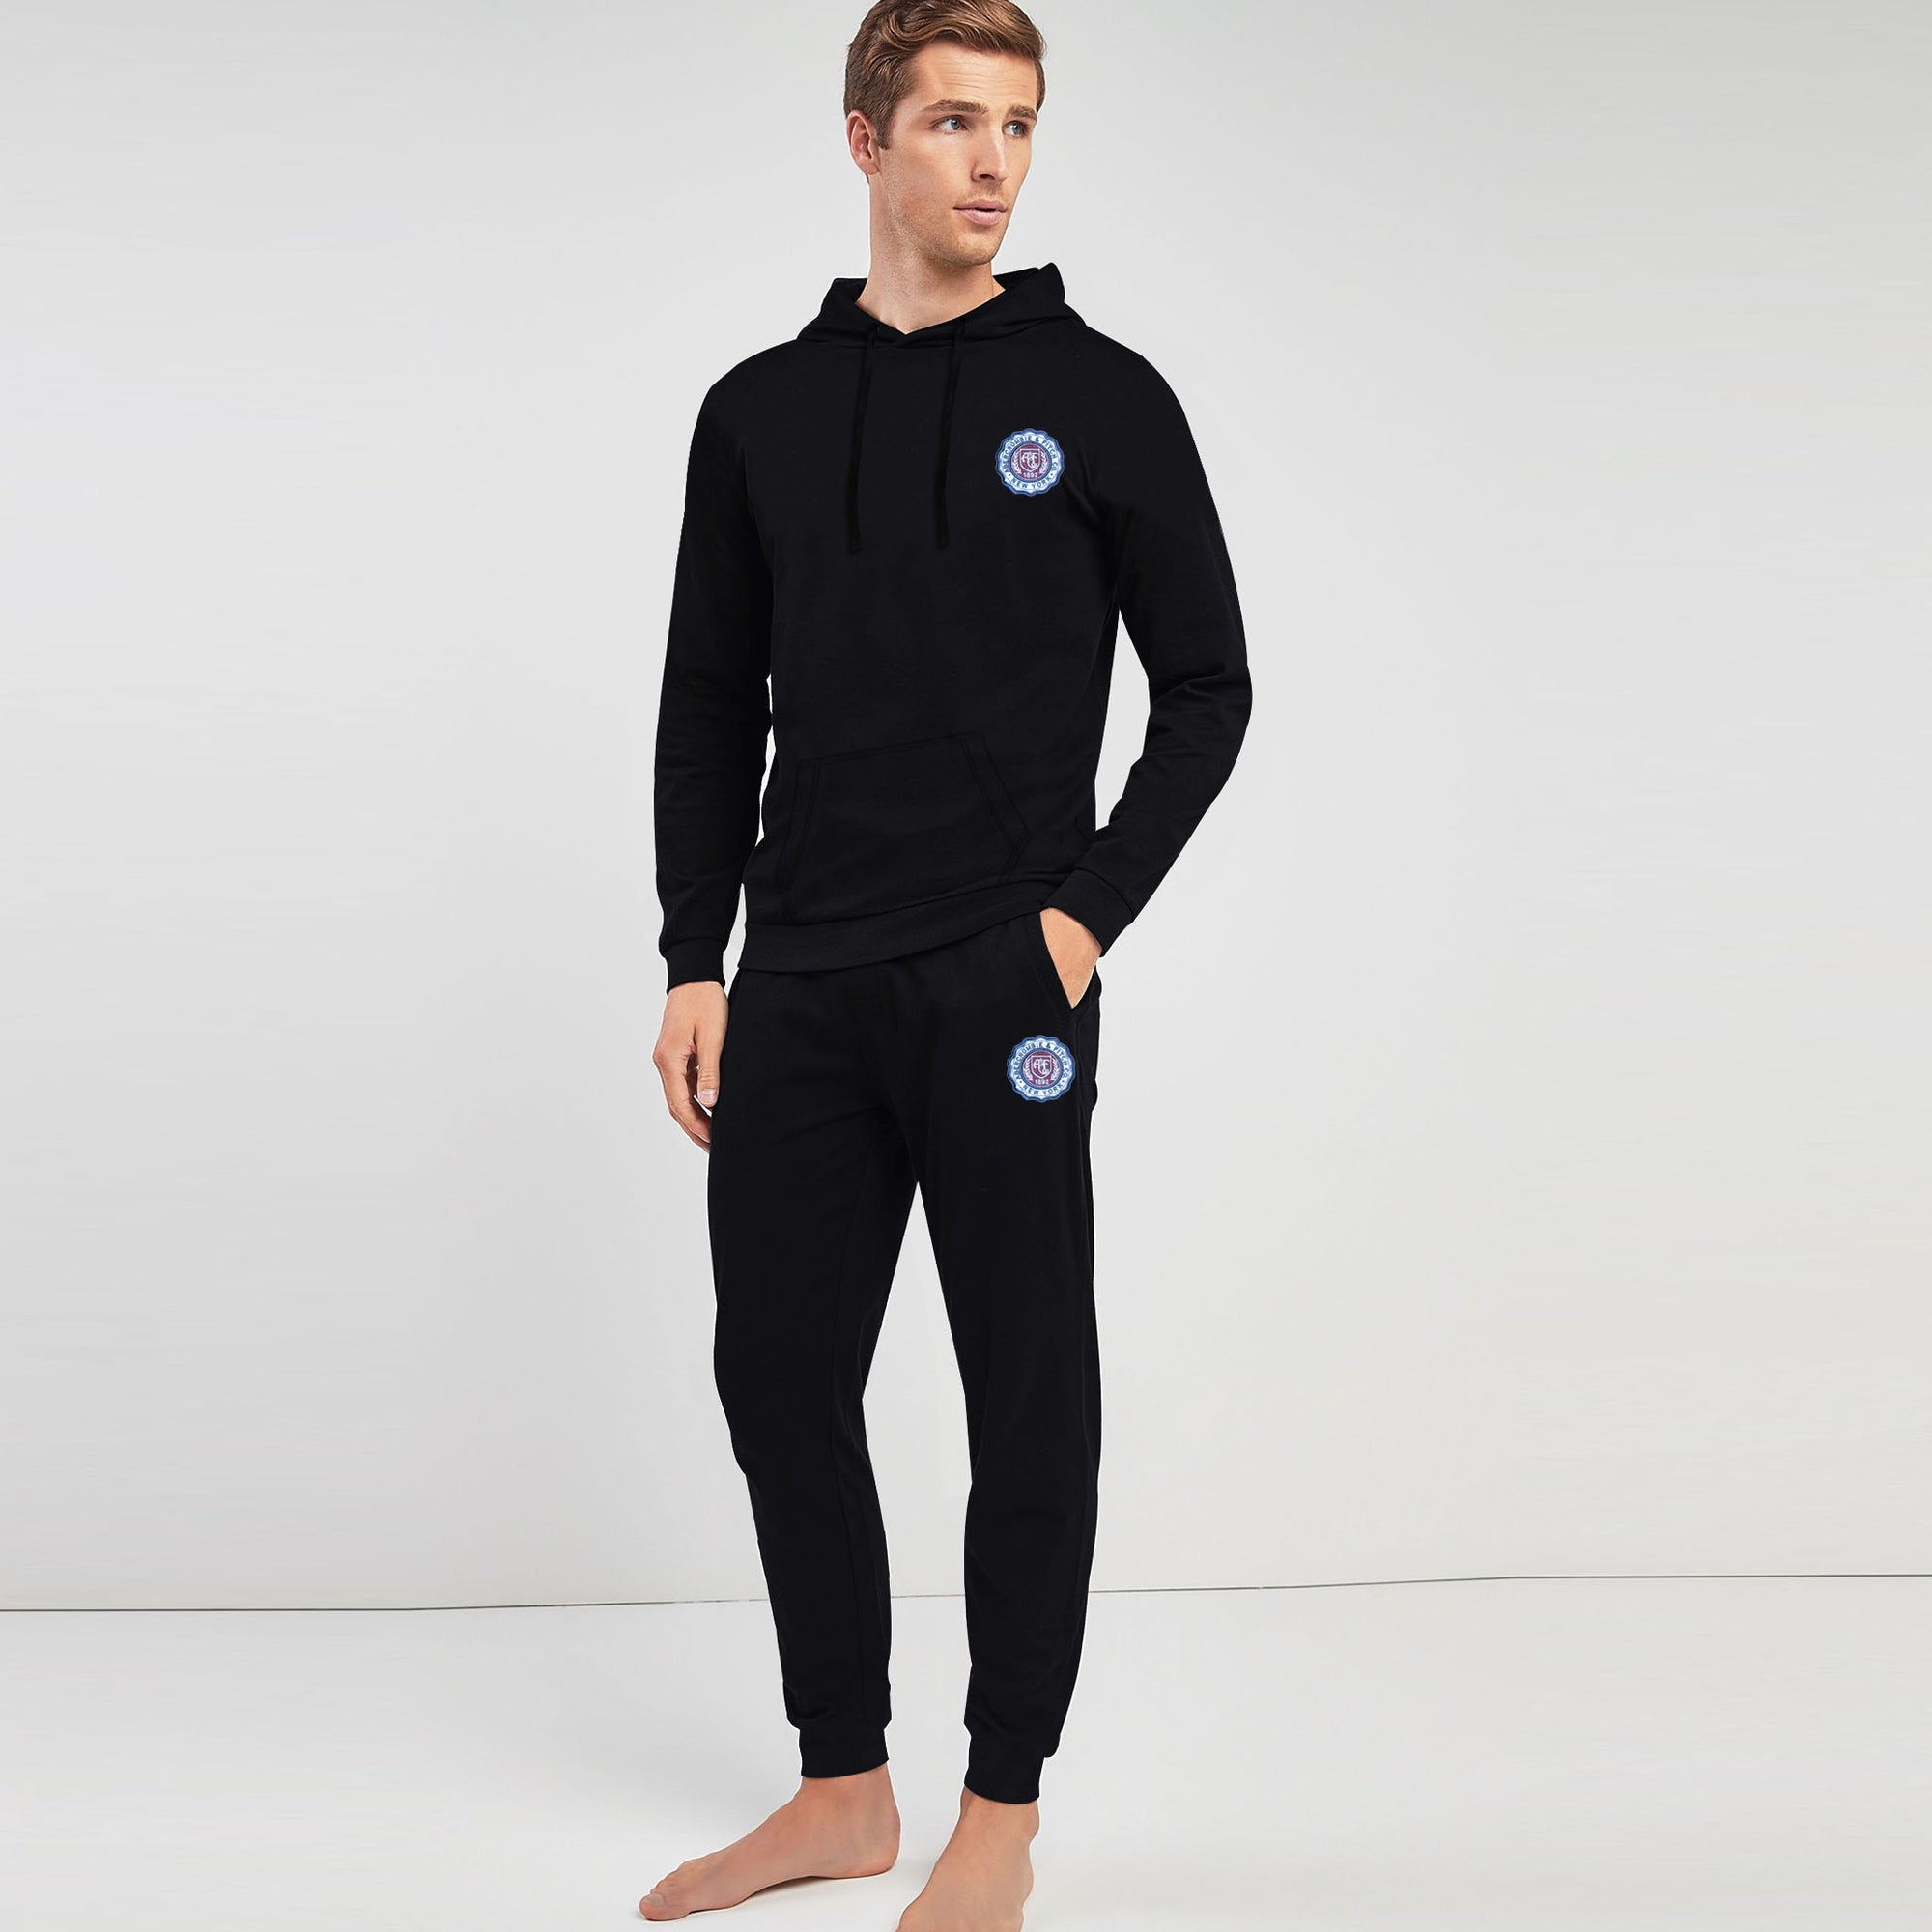 A&F Slim Fit Pullover Rib Bottom Fleece Track Suit For Men-Black-BE6449